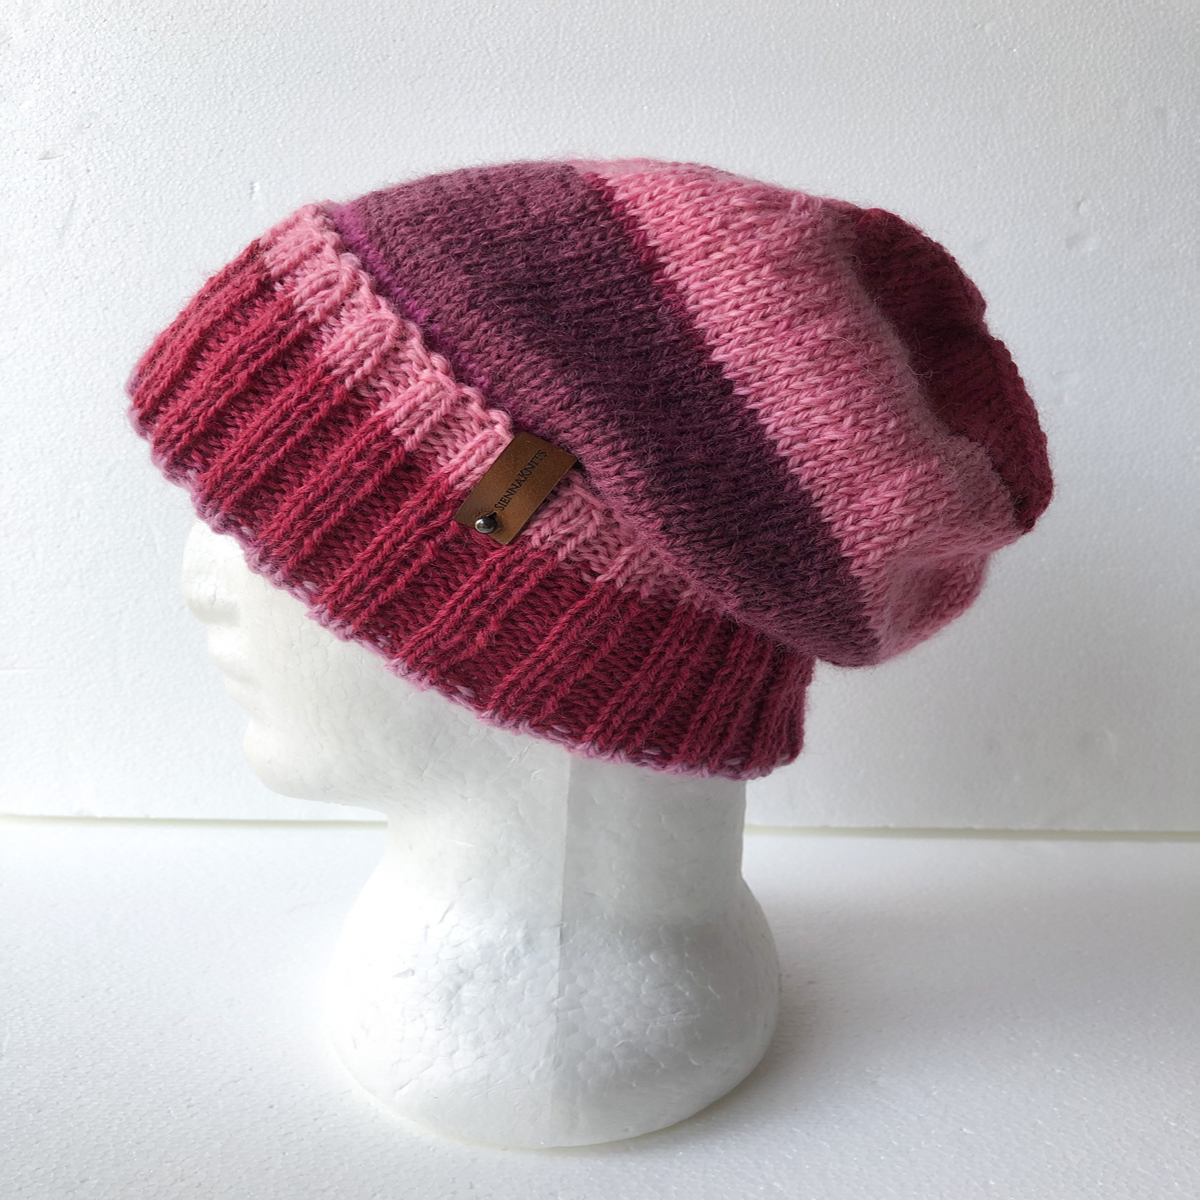 100% Wool Knit Beanie For Women Pink+Purple With Foldable Brim By SiennaKnits